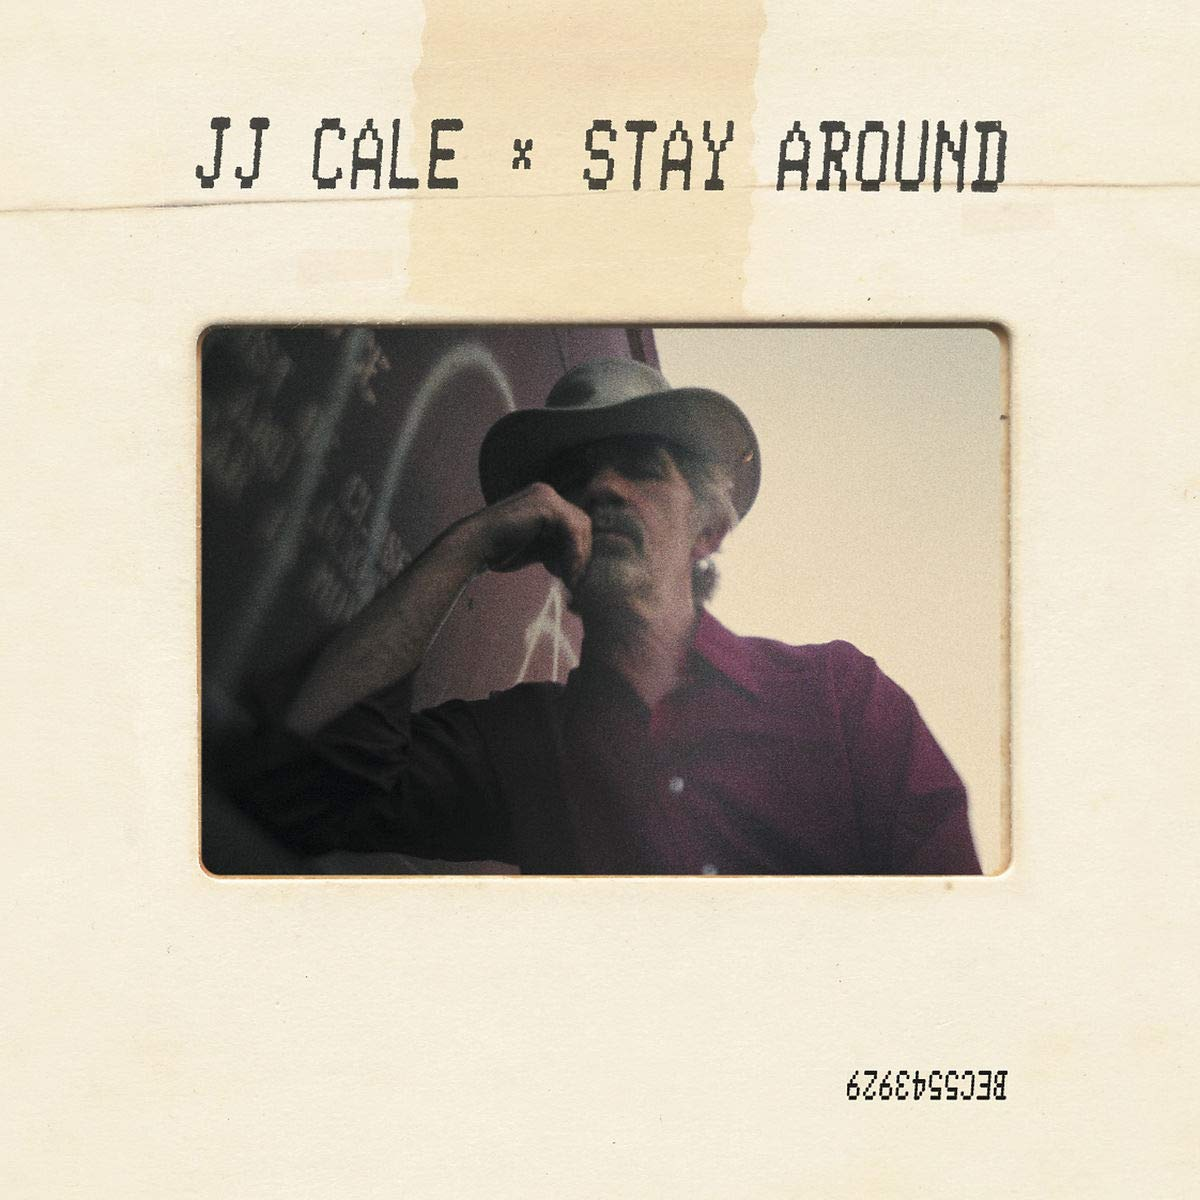 J.J. Cale - Stay Around [2LP/CD]